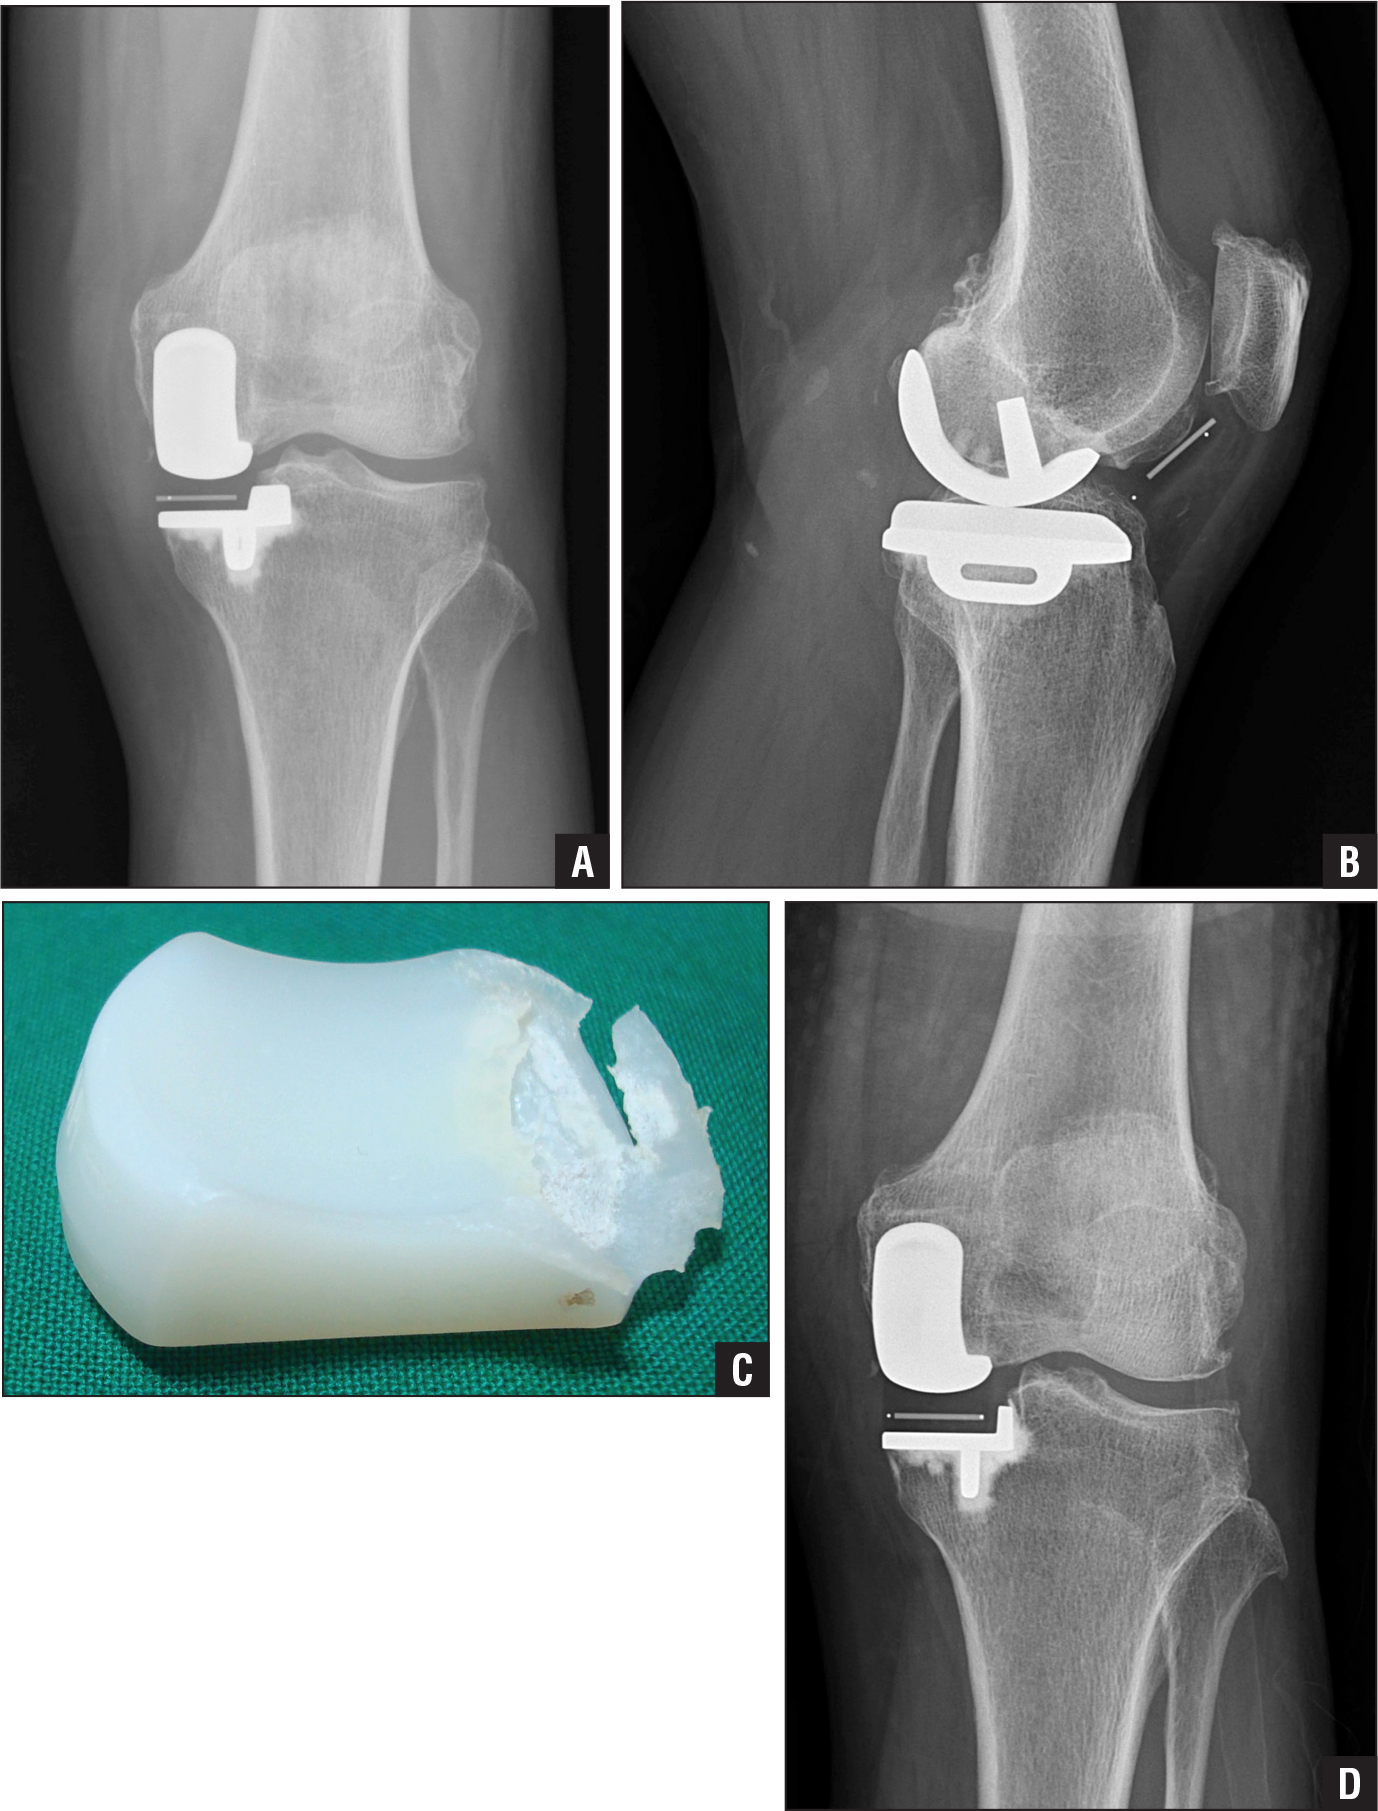 Postoperative anteroposterior radiograph showing good alignment of the femoral and tibial components (A). Lateral radiograph showing anterior dislocation of the meniscal bearing (B). Photograph of the retrieved meniscal bearing showing severe erosions on the posterior lip, suggesting that wear of the posterior lip during deep flexion was the cause of this dislocation (C). Anteroposterior radiograph after exchange of the meniscal bearing with a thicker bearing (D).